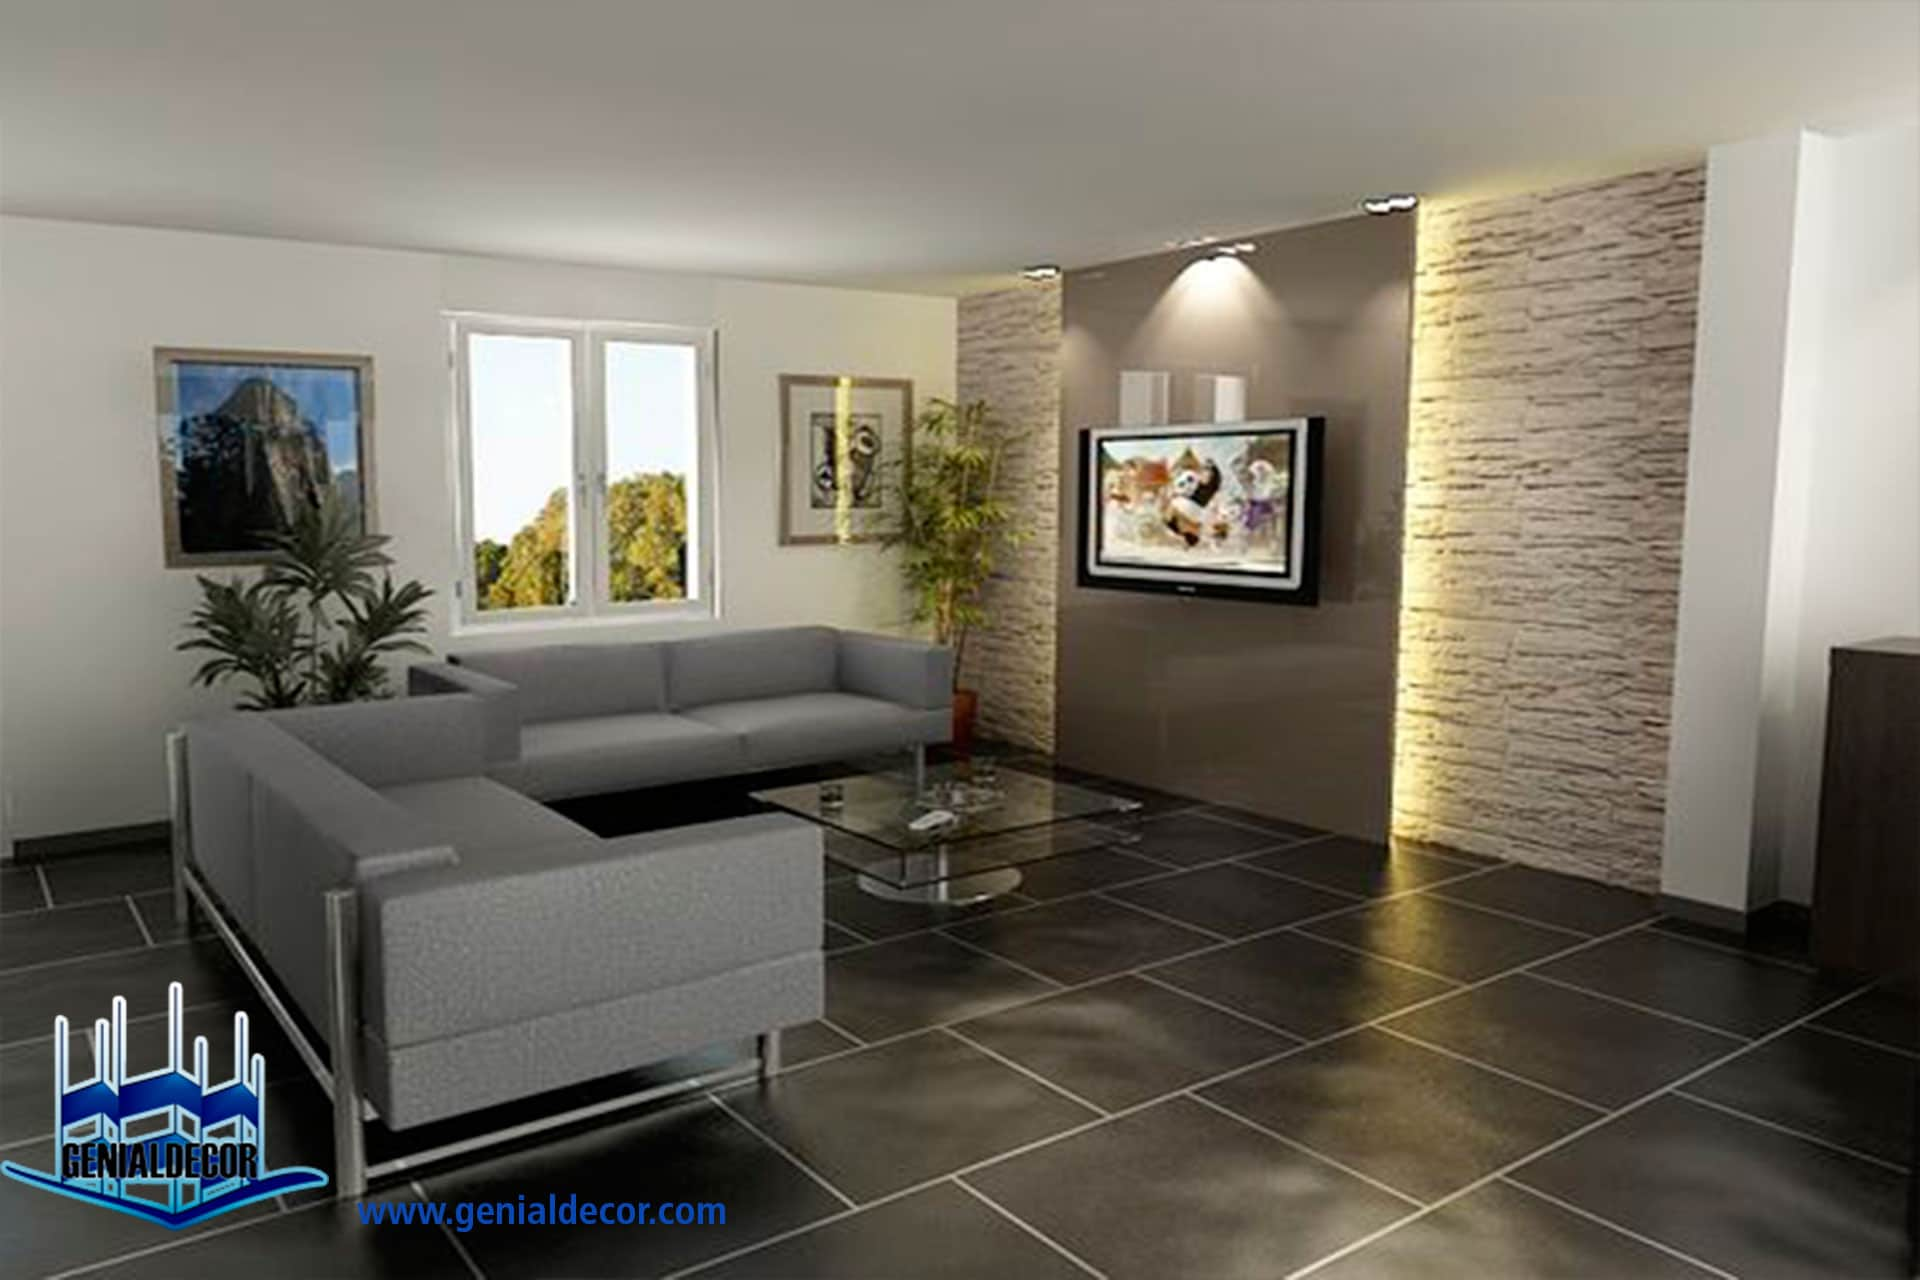 Tips para la decoraci n de centro de entretenimiento genialdecor - Briquette decorative interieure ...